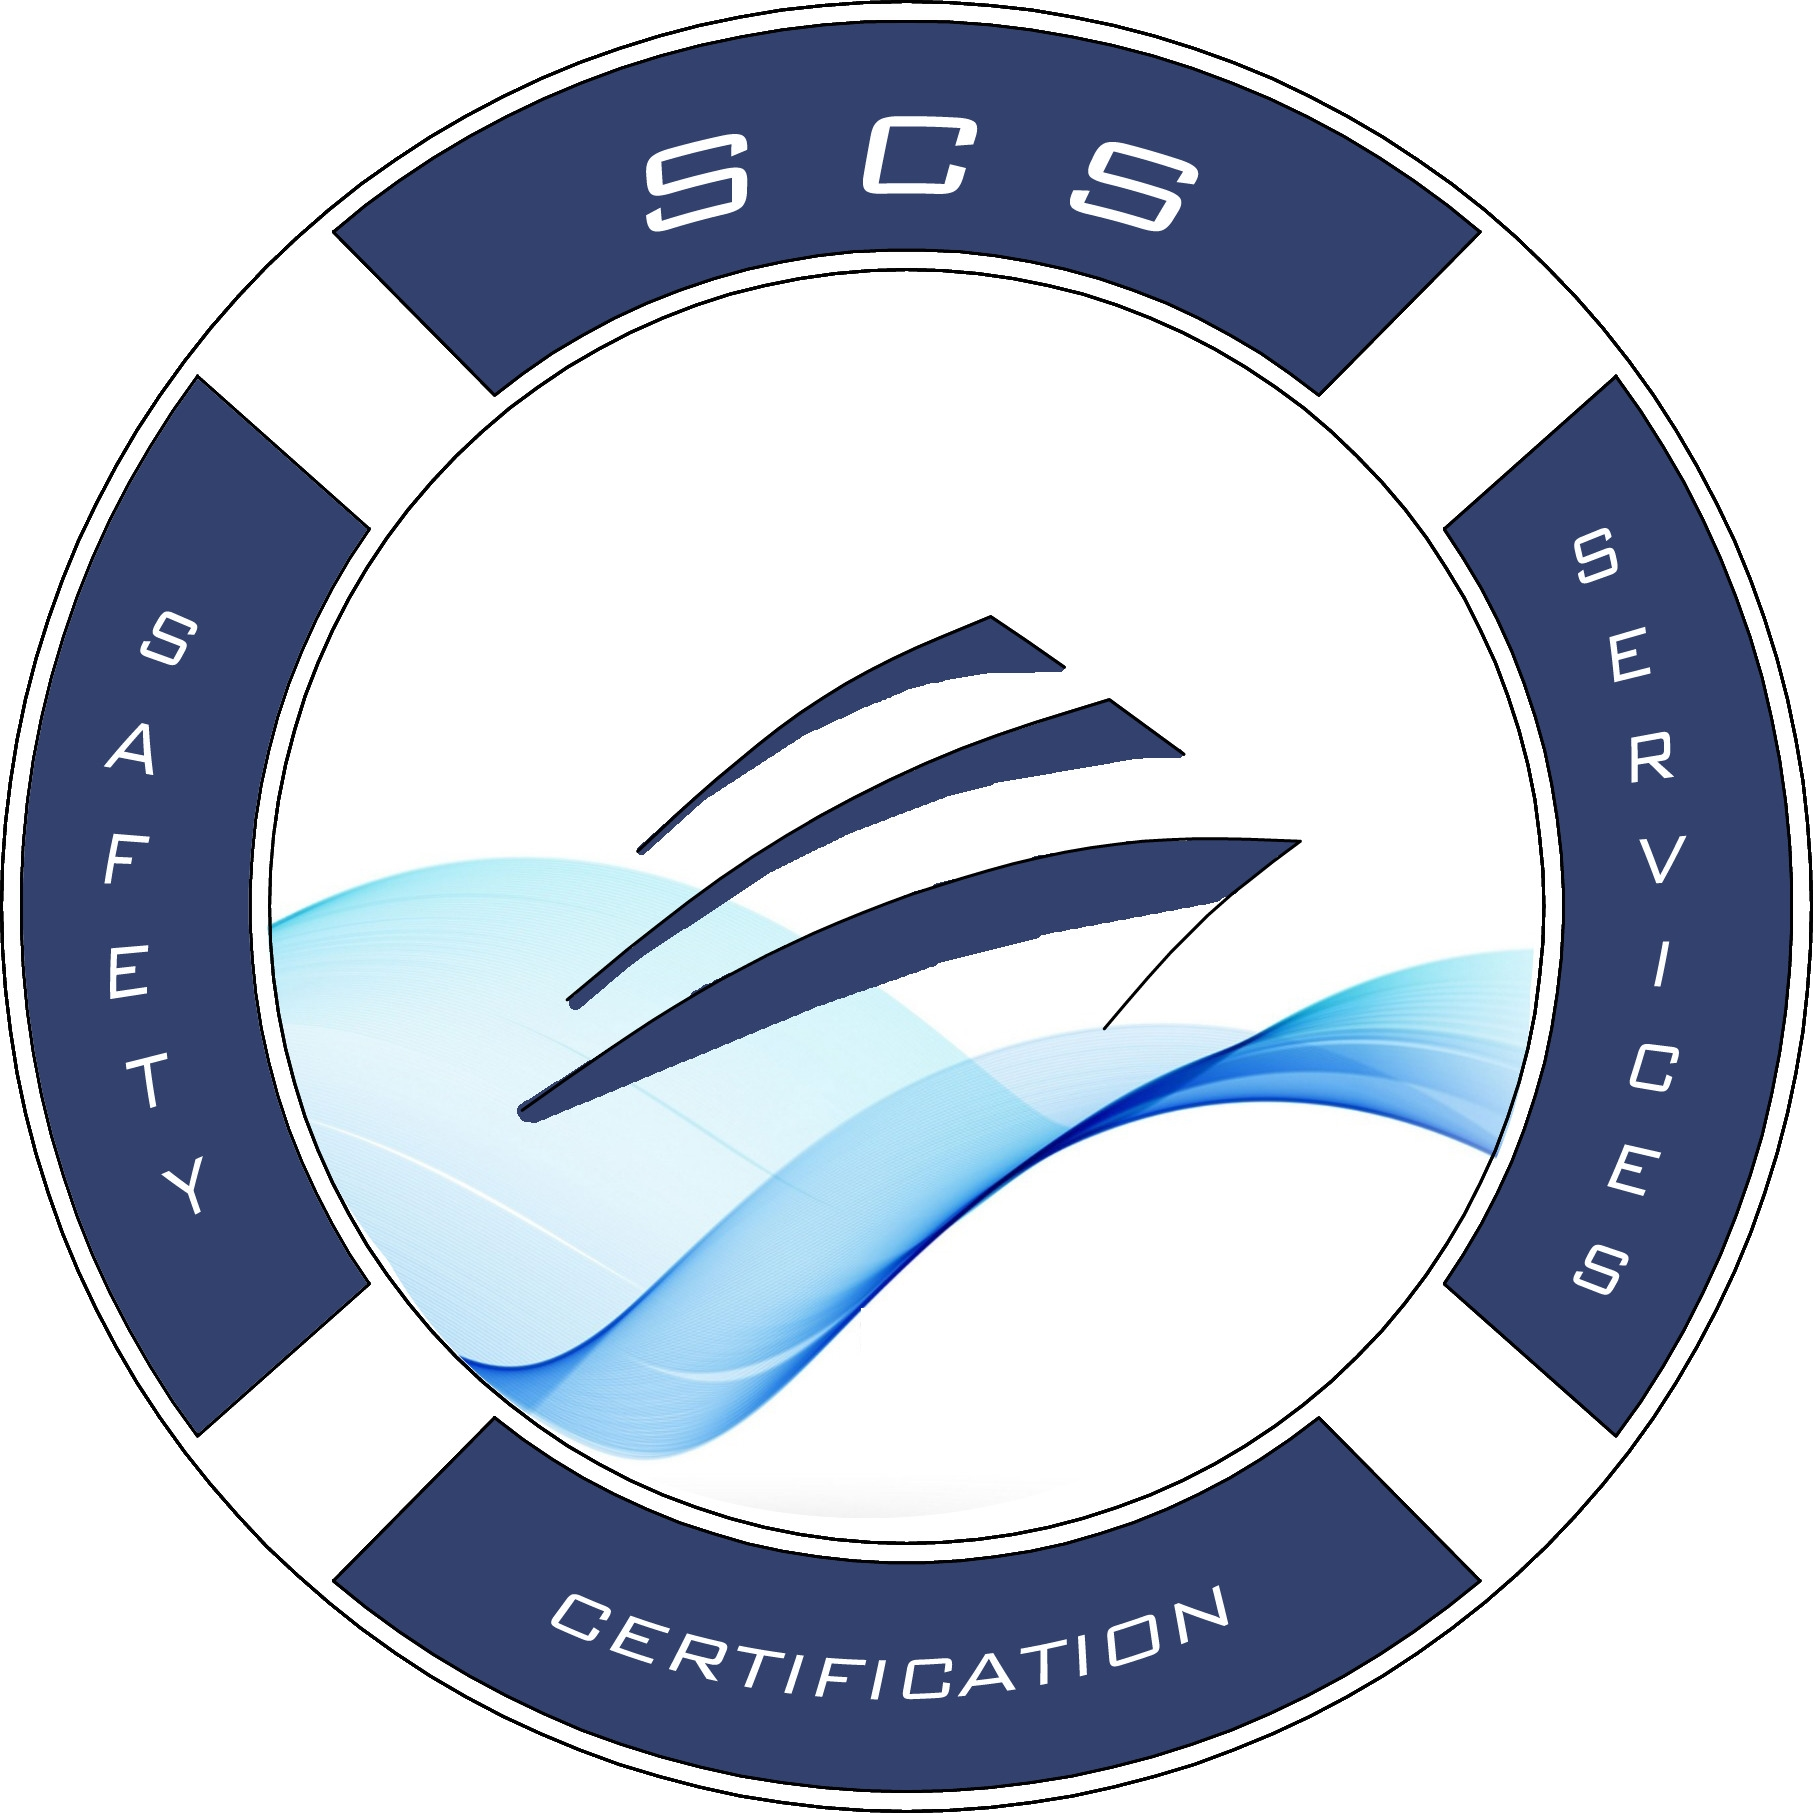 SCS Safety and Certification Services S.r.l. - Organismo notificato per la nautica da diporto N.B.28